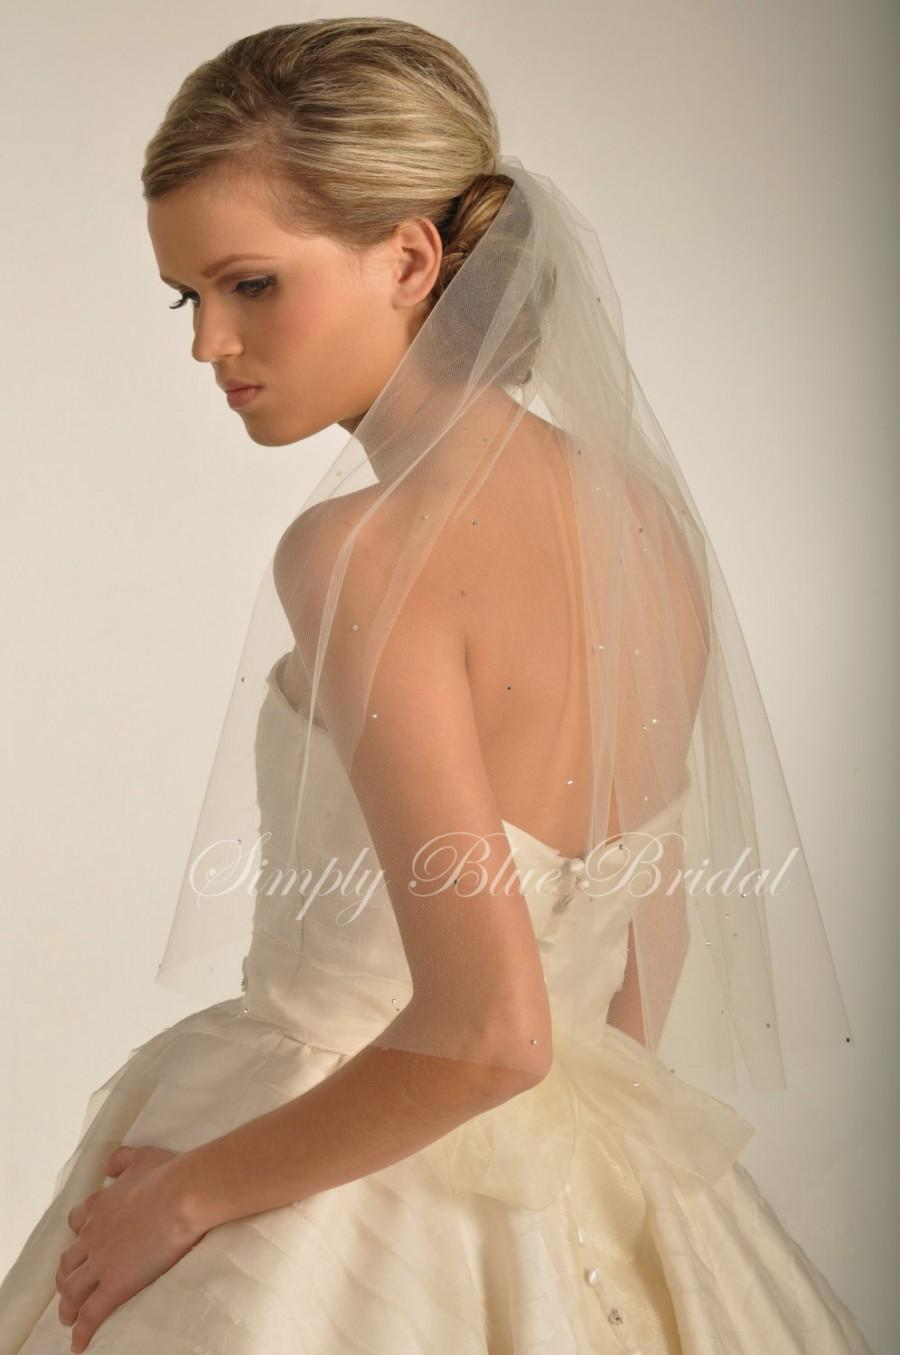 Mariage - Crystal Veil - Scattered Swarovski Crystals - Elbow Length Veil - White, Diamond White, Ivory, Chamagne